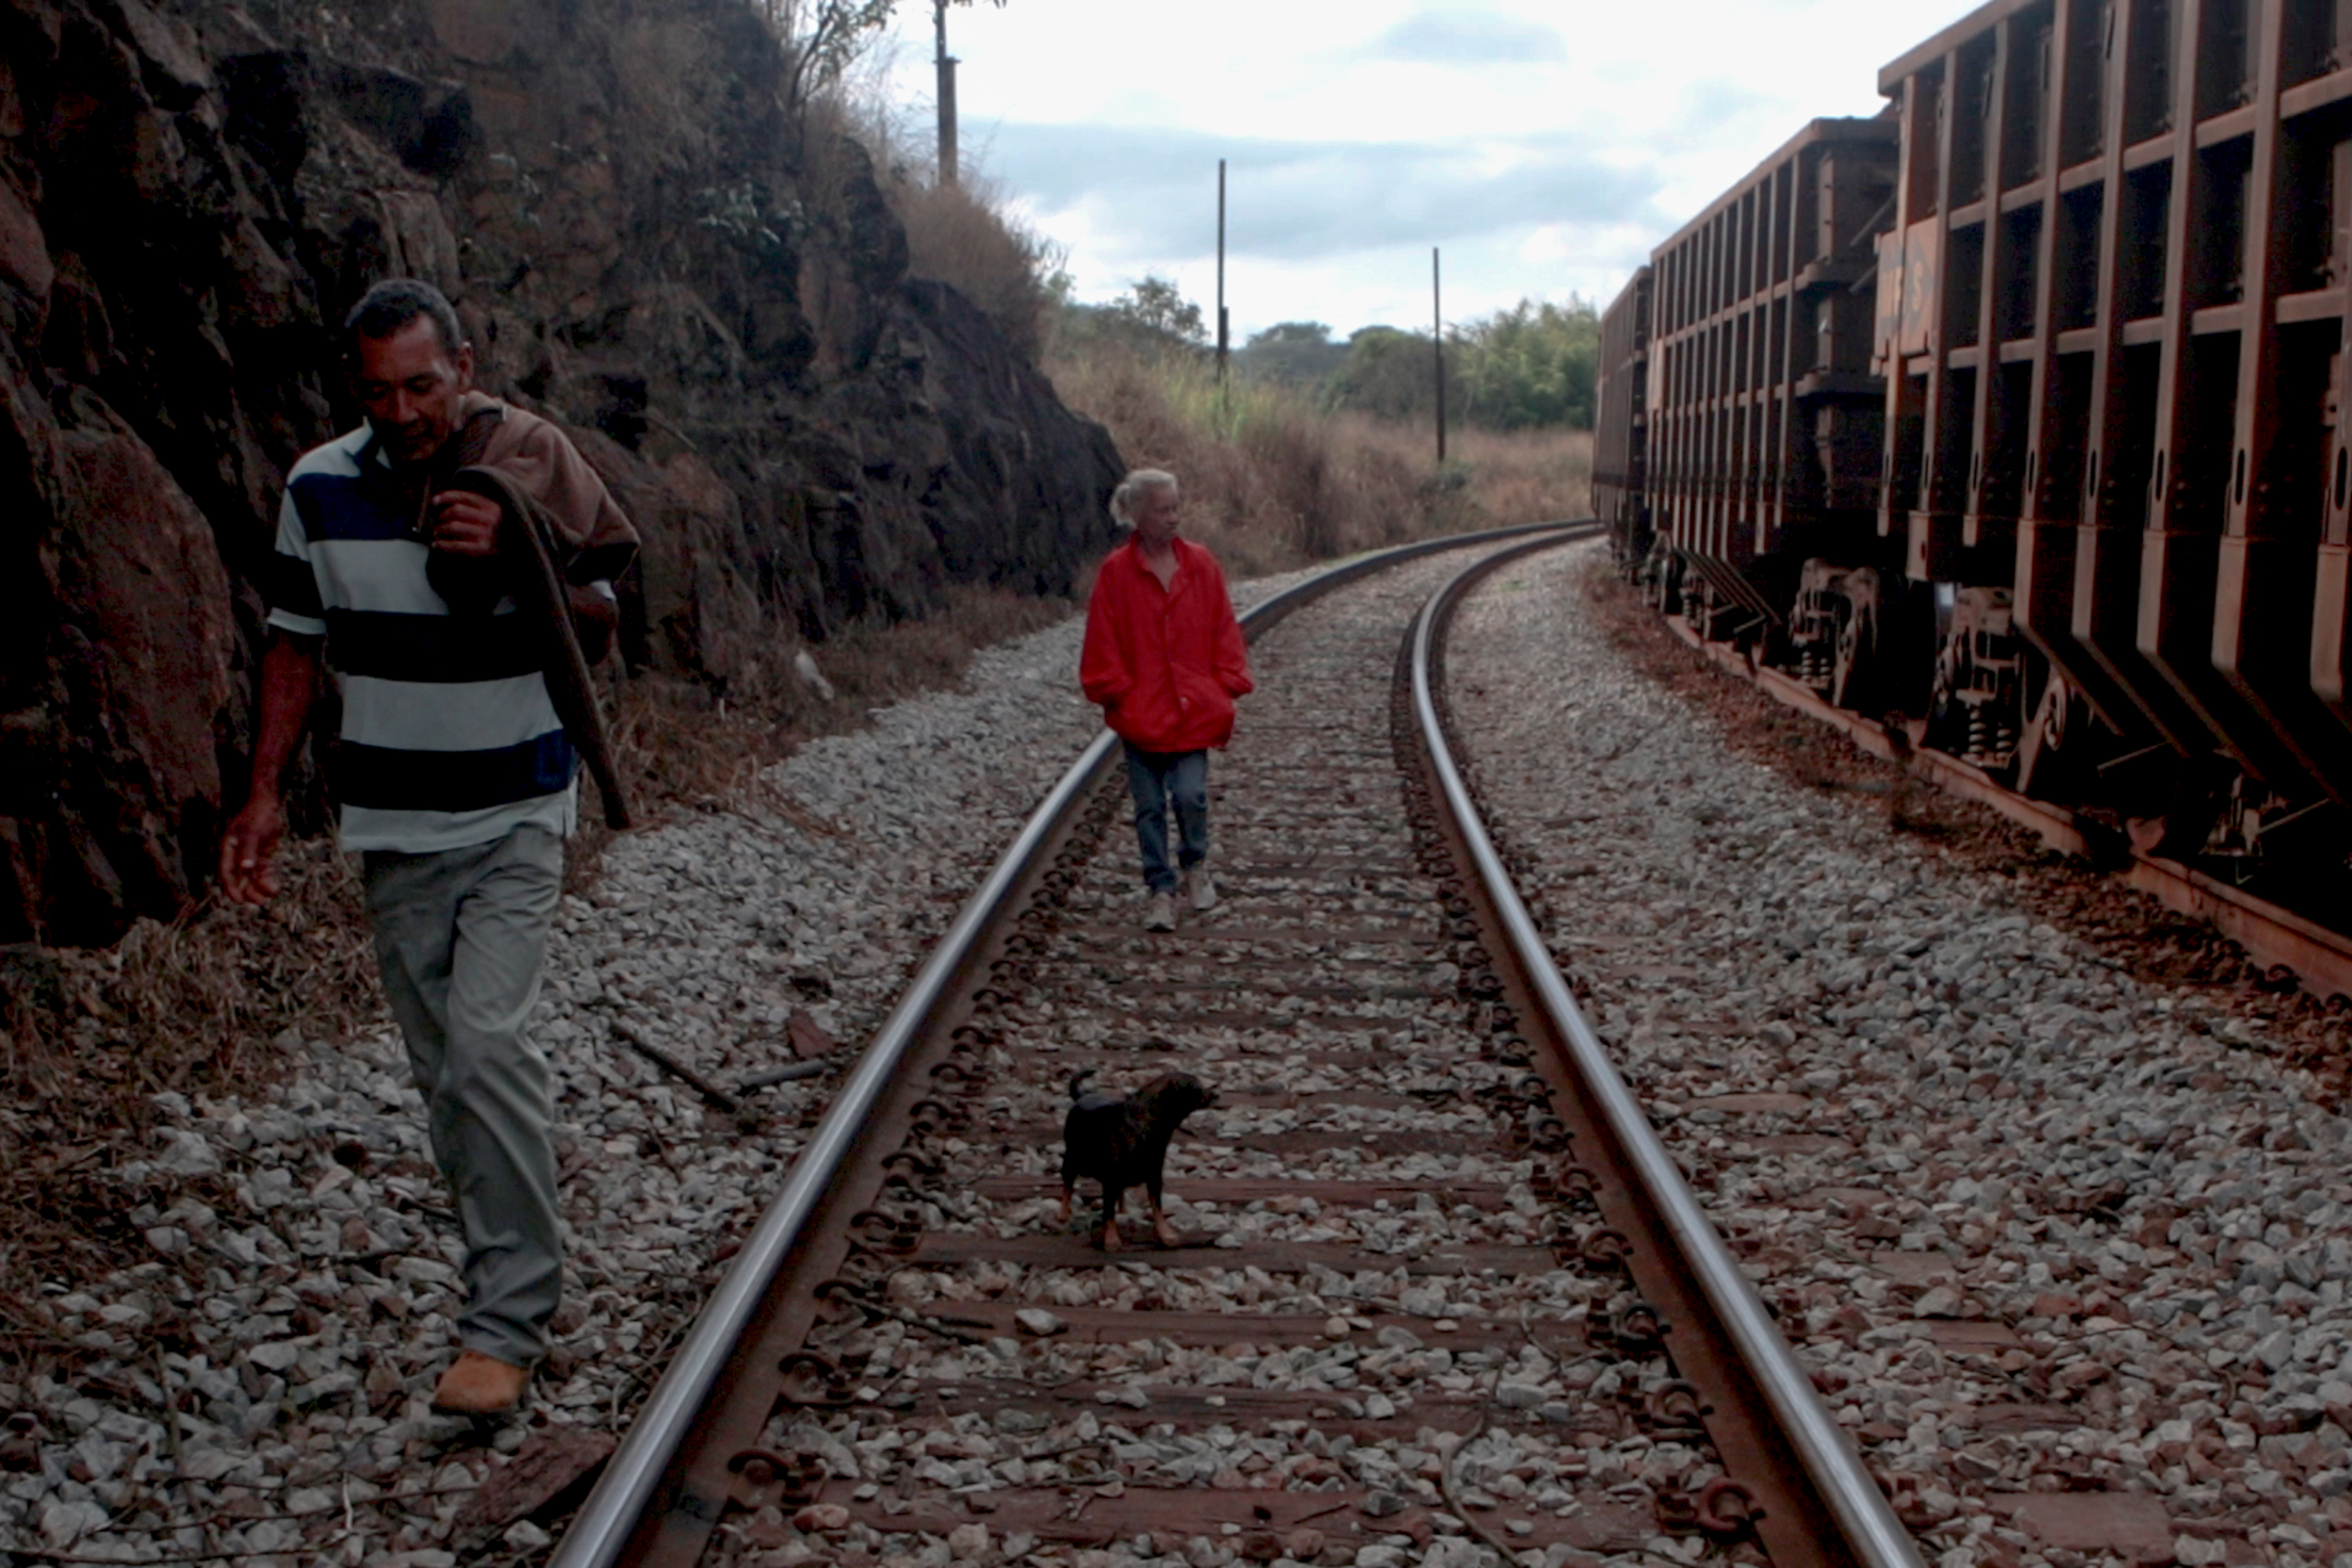 The couple Fátima de Jesus and Oswaldo Zacarias walk alongside Vale's train tracks. The miner's train keeps running late at night and makes it difficult for Pires residents to move around